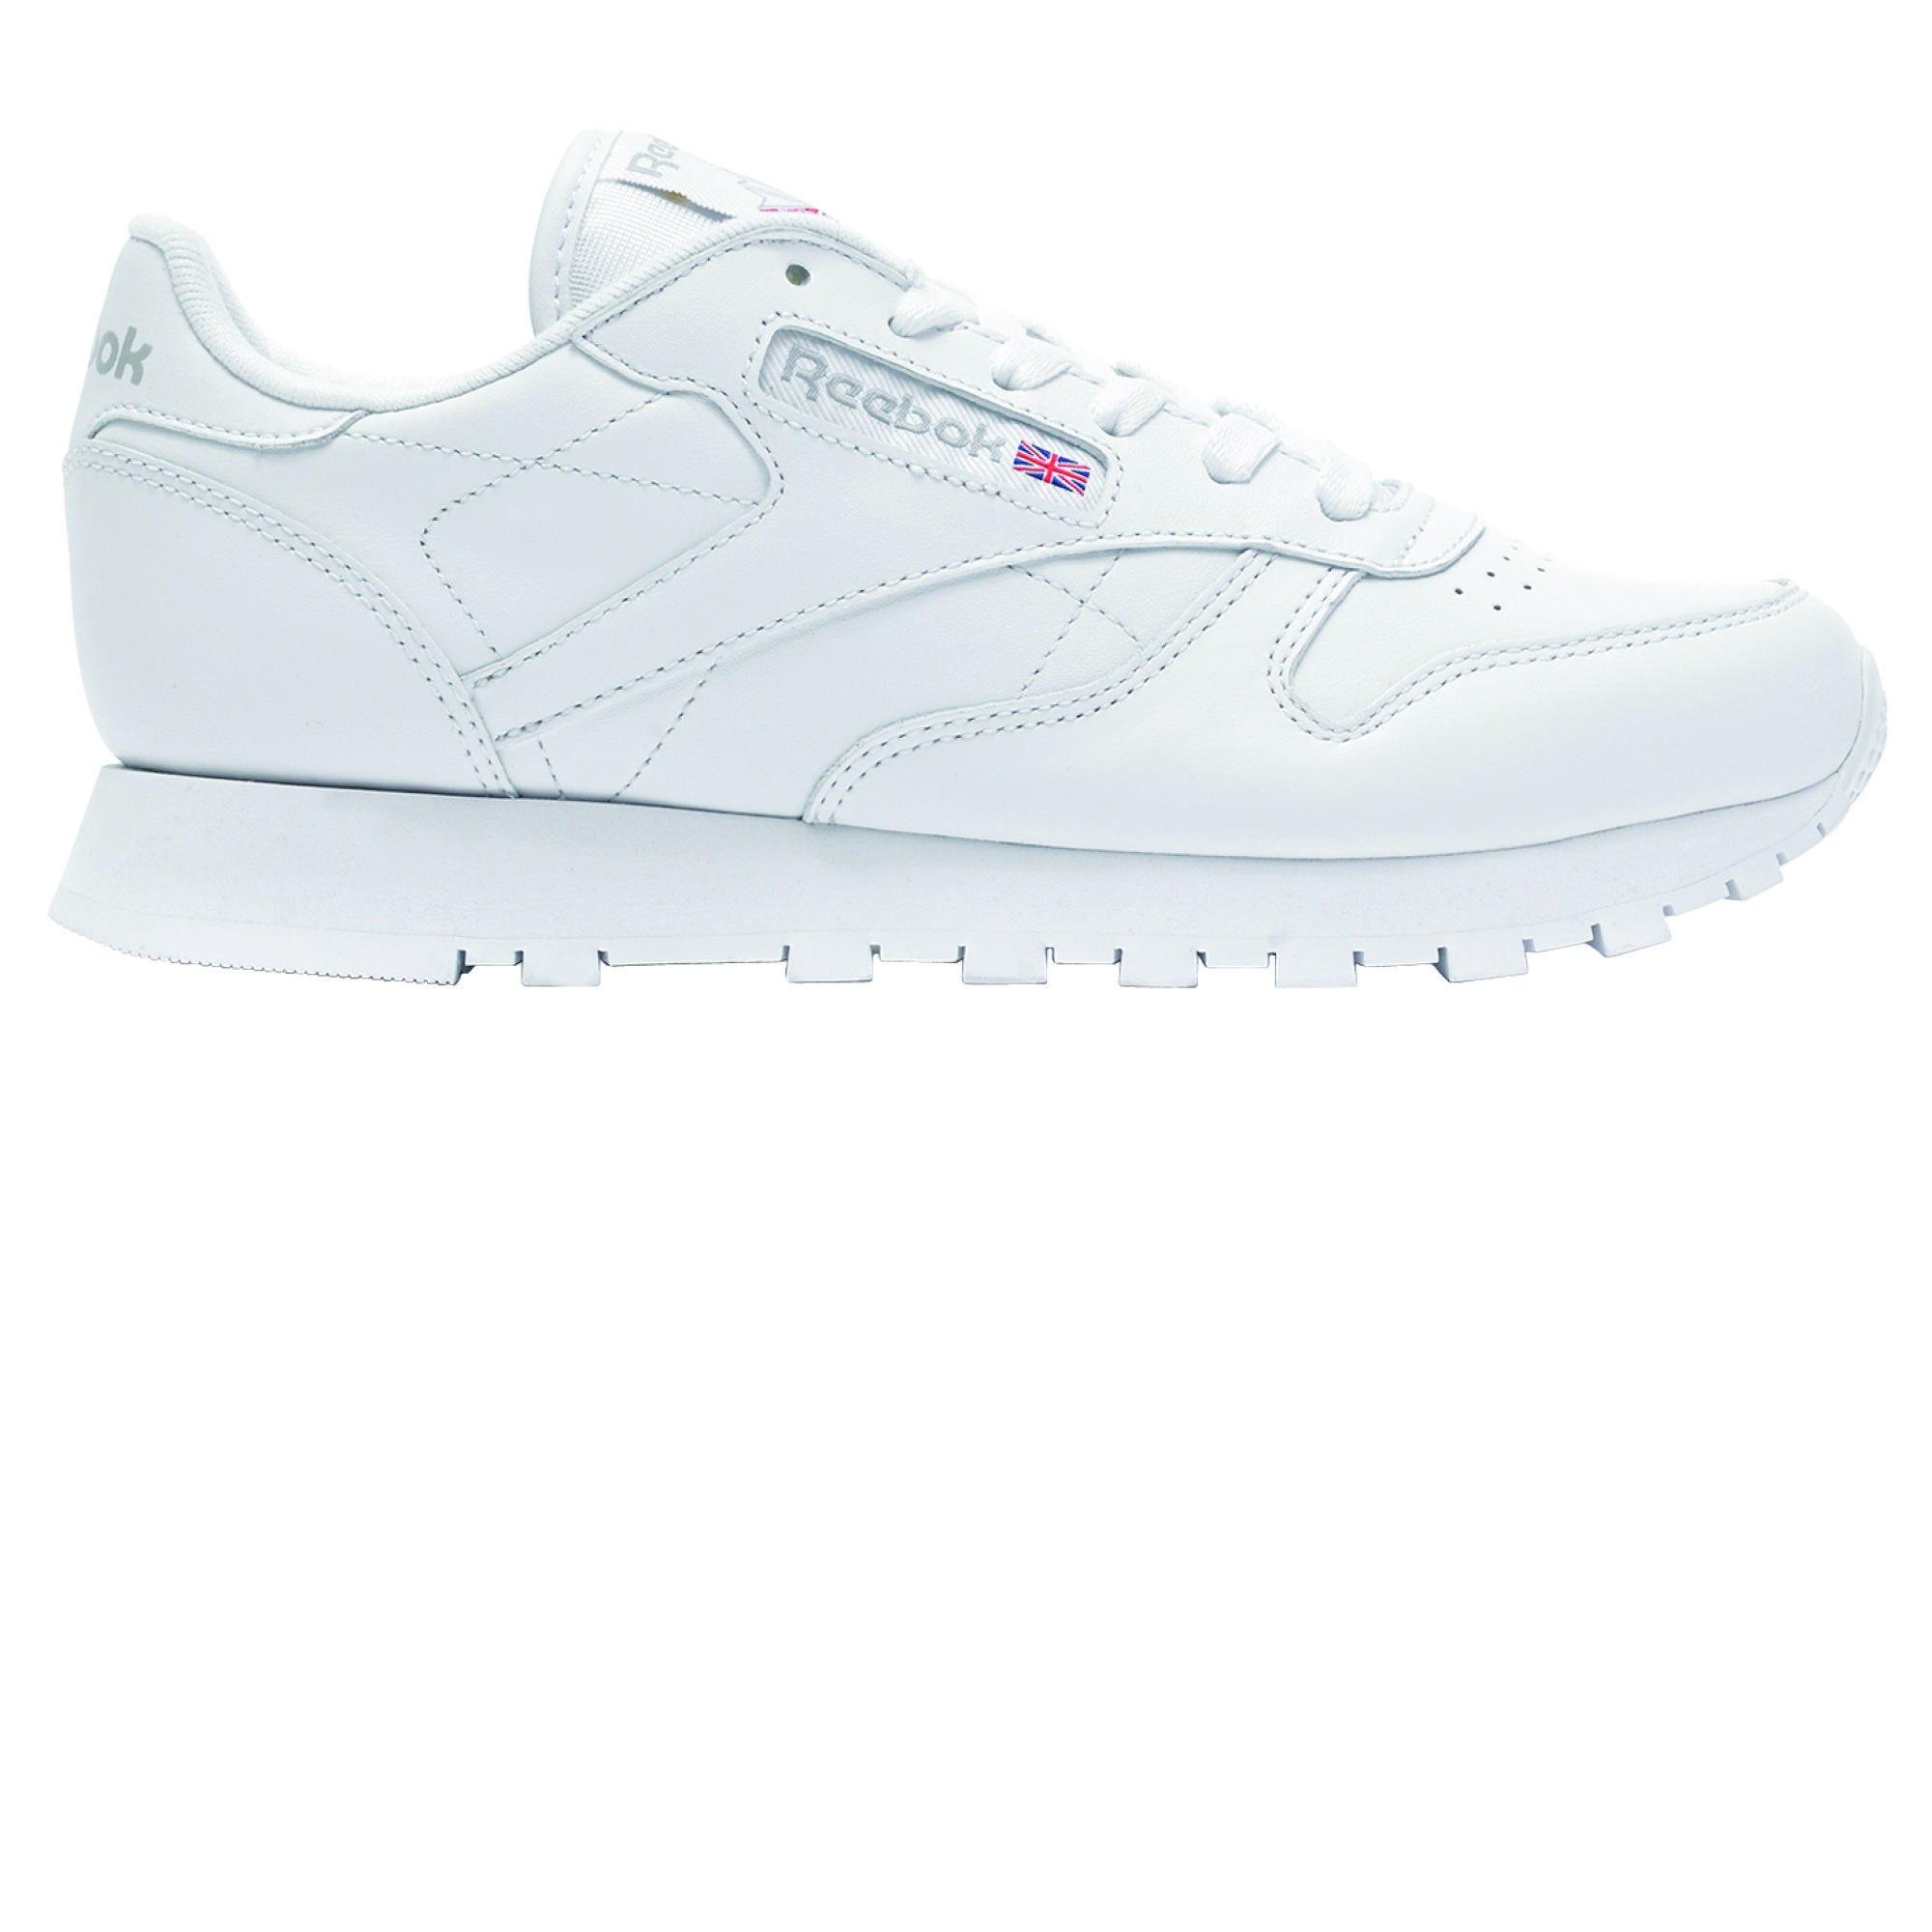 c4d048d01 ZAPATILLAS REEBOK CLASSIC LEATHER MUJER 2232